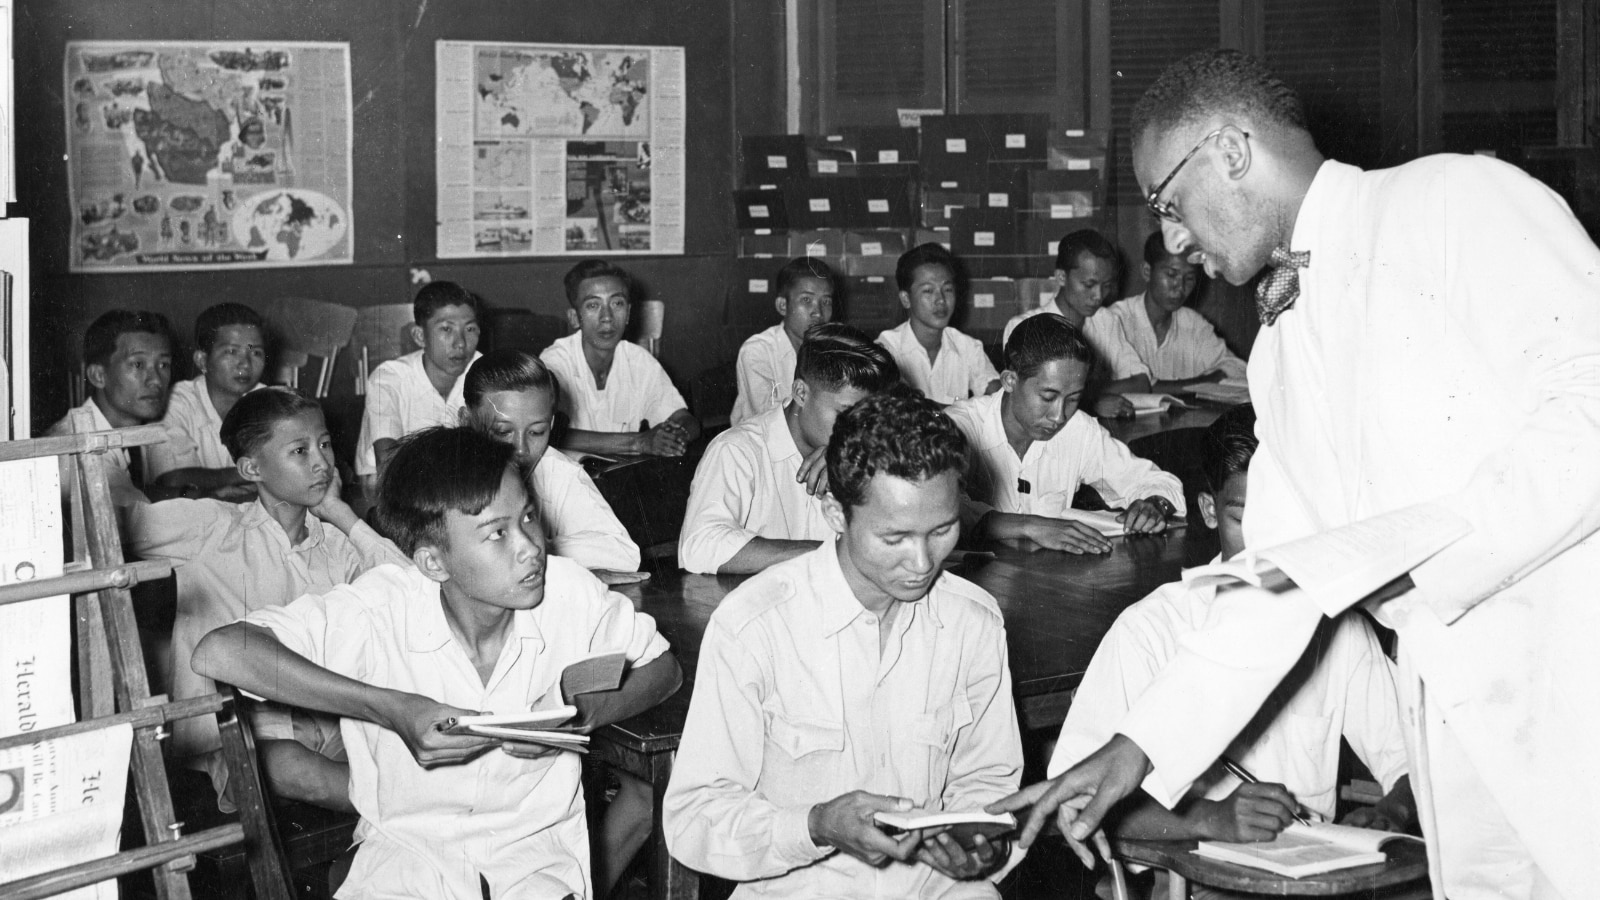 In the early years of the Fulbright Program in Cambodia, U.S. Fulbrighter Charles R. Sadler (right) teaches English to students in Phnom Penh from Ecole Descartes, Lycee Sisowath, Ecole Miche, and members of the city's Police Department. (Photo courtesy of University of Arkansas Libraries Special Collections/ Public Domain)